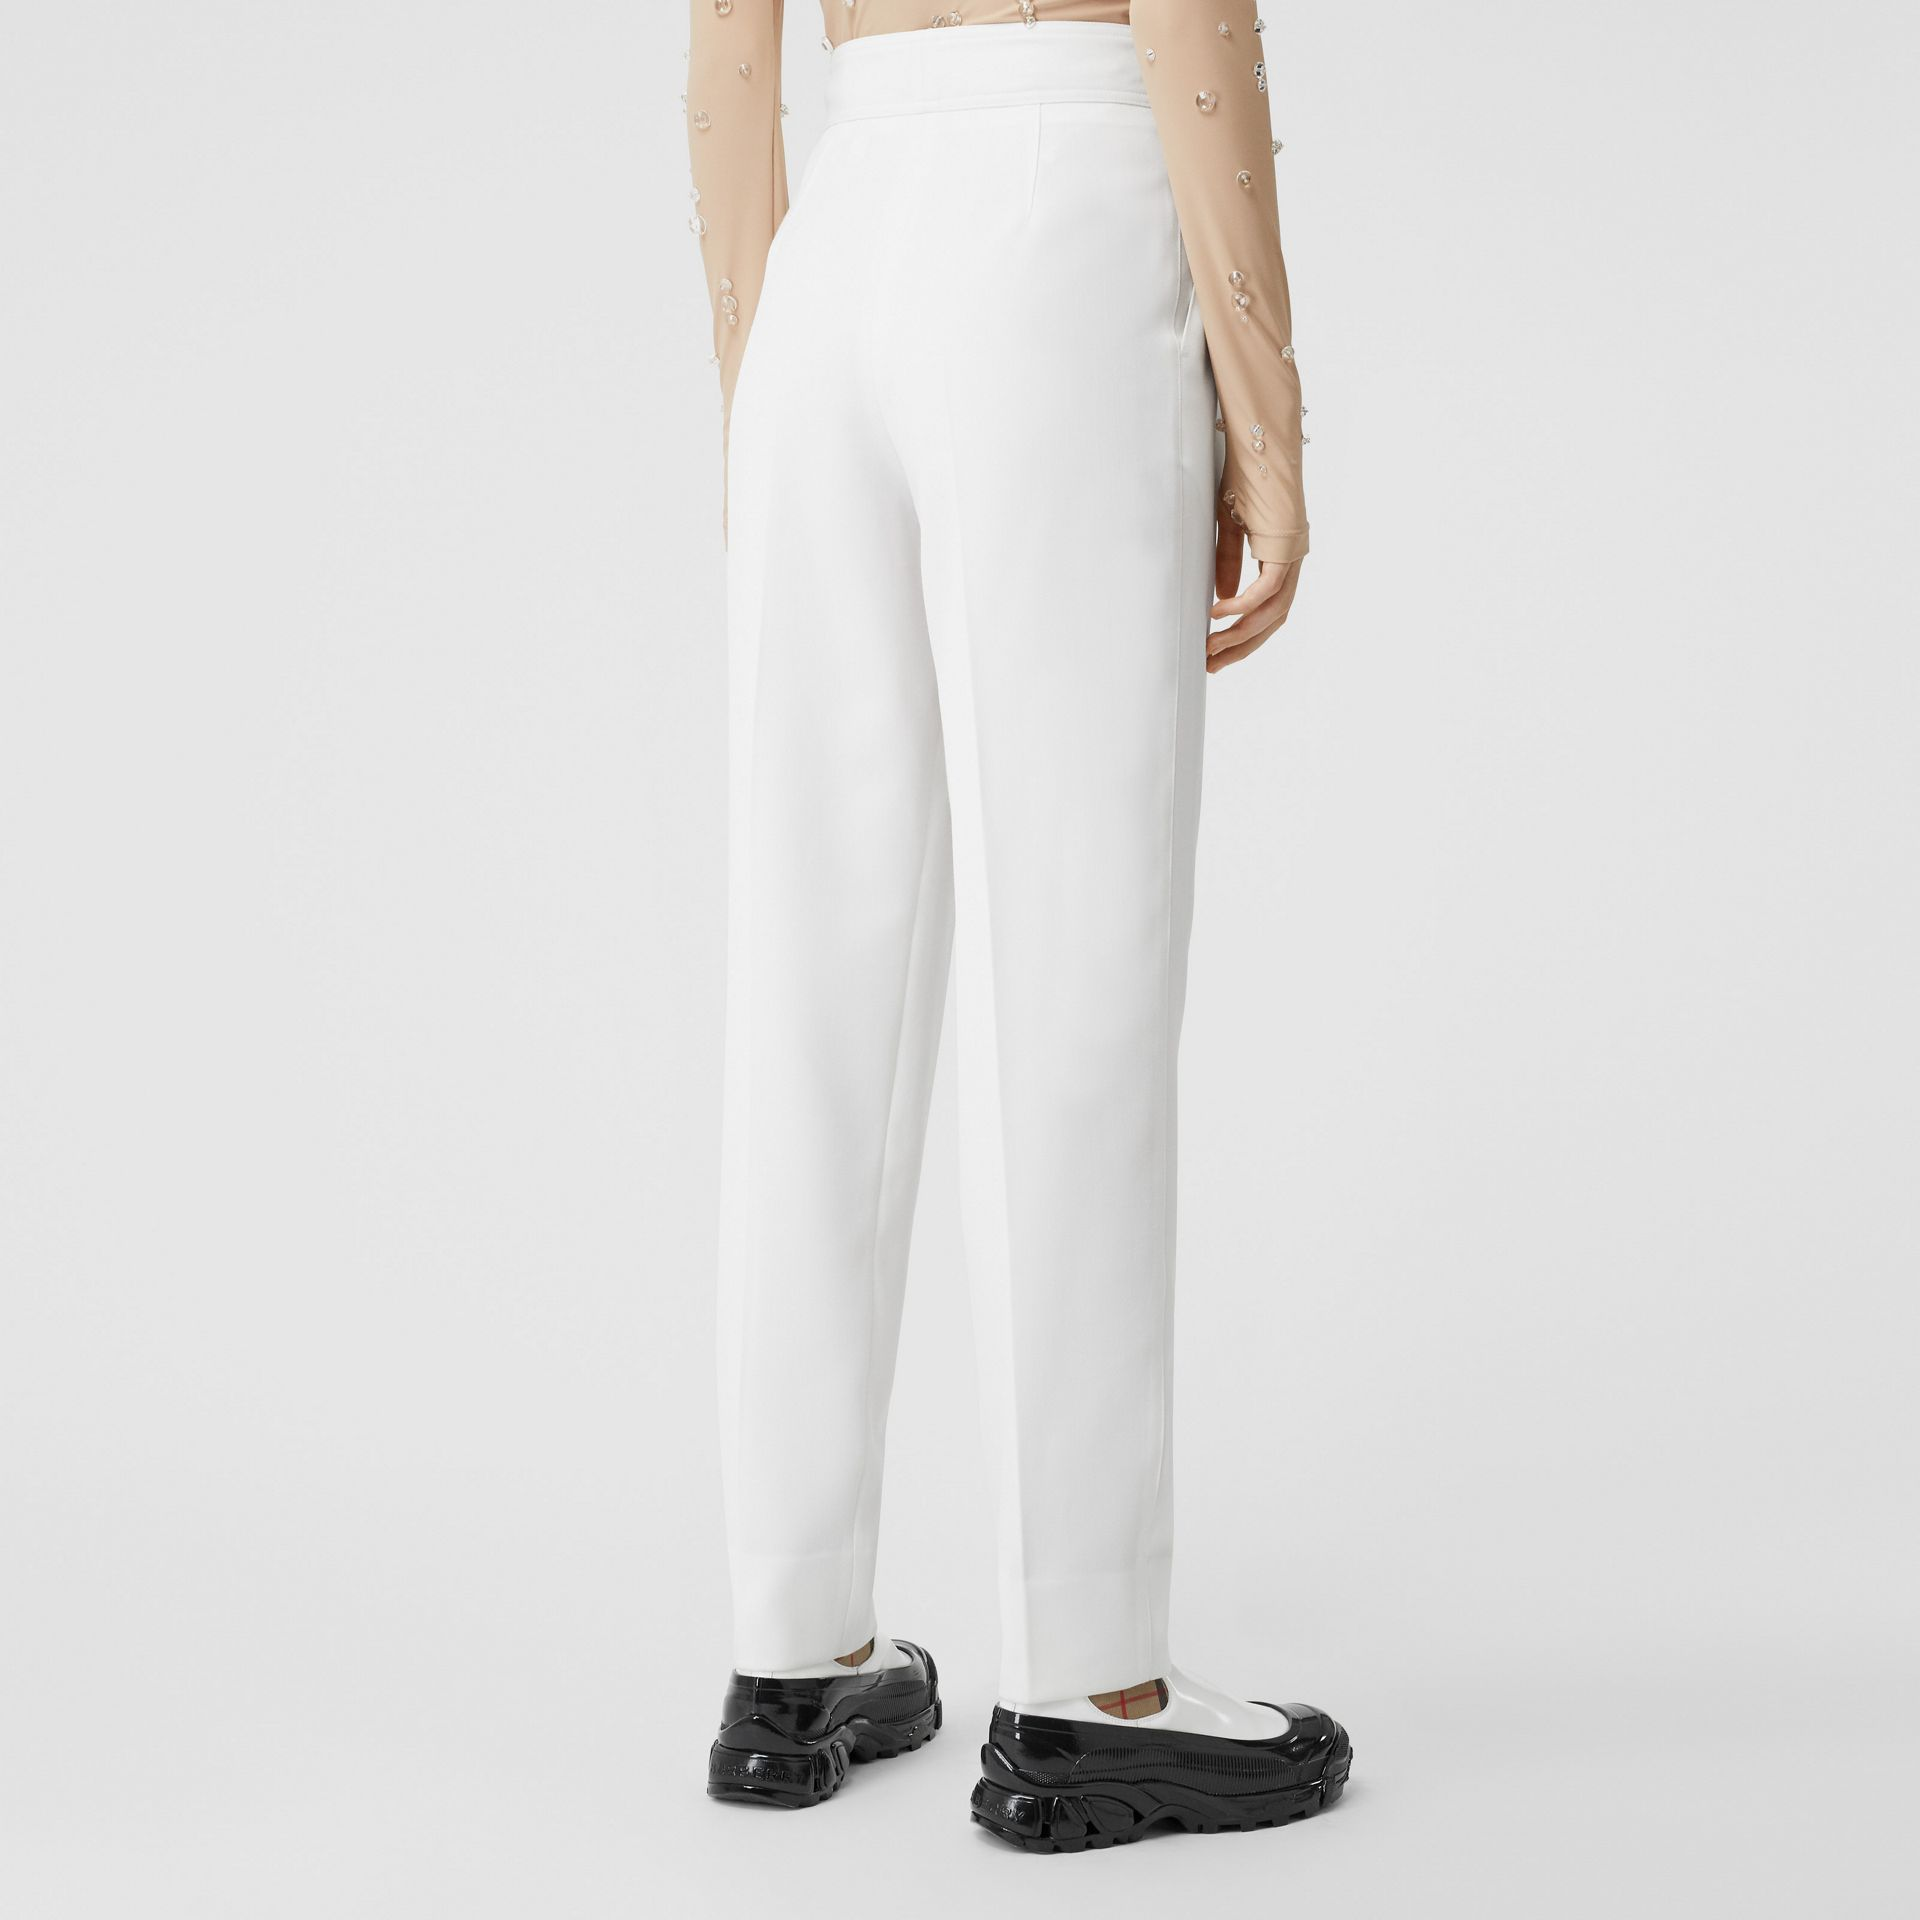 Location Print Wool Blend Tailored Trousers in Optic White - Women | Burberry - gallery image 2